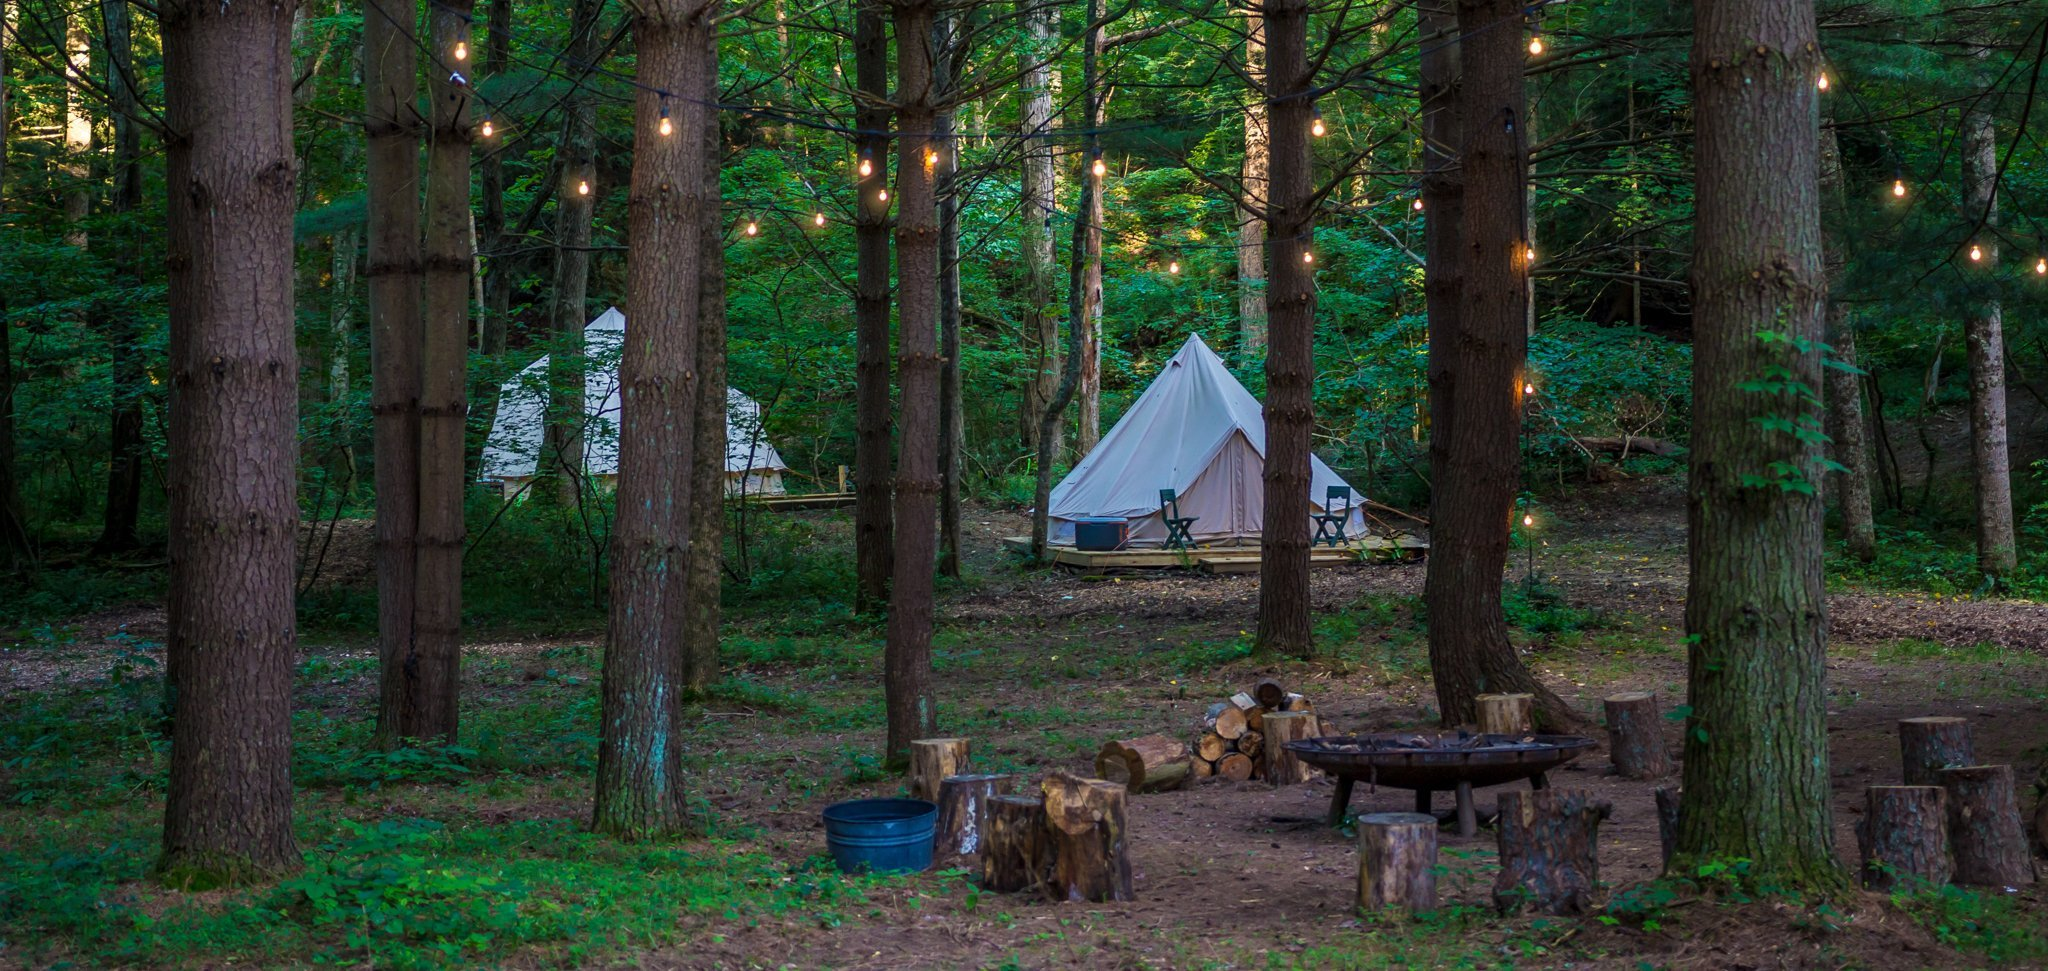 8 Tips For Turning Camping Into Glamping